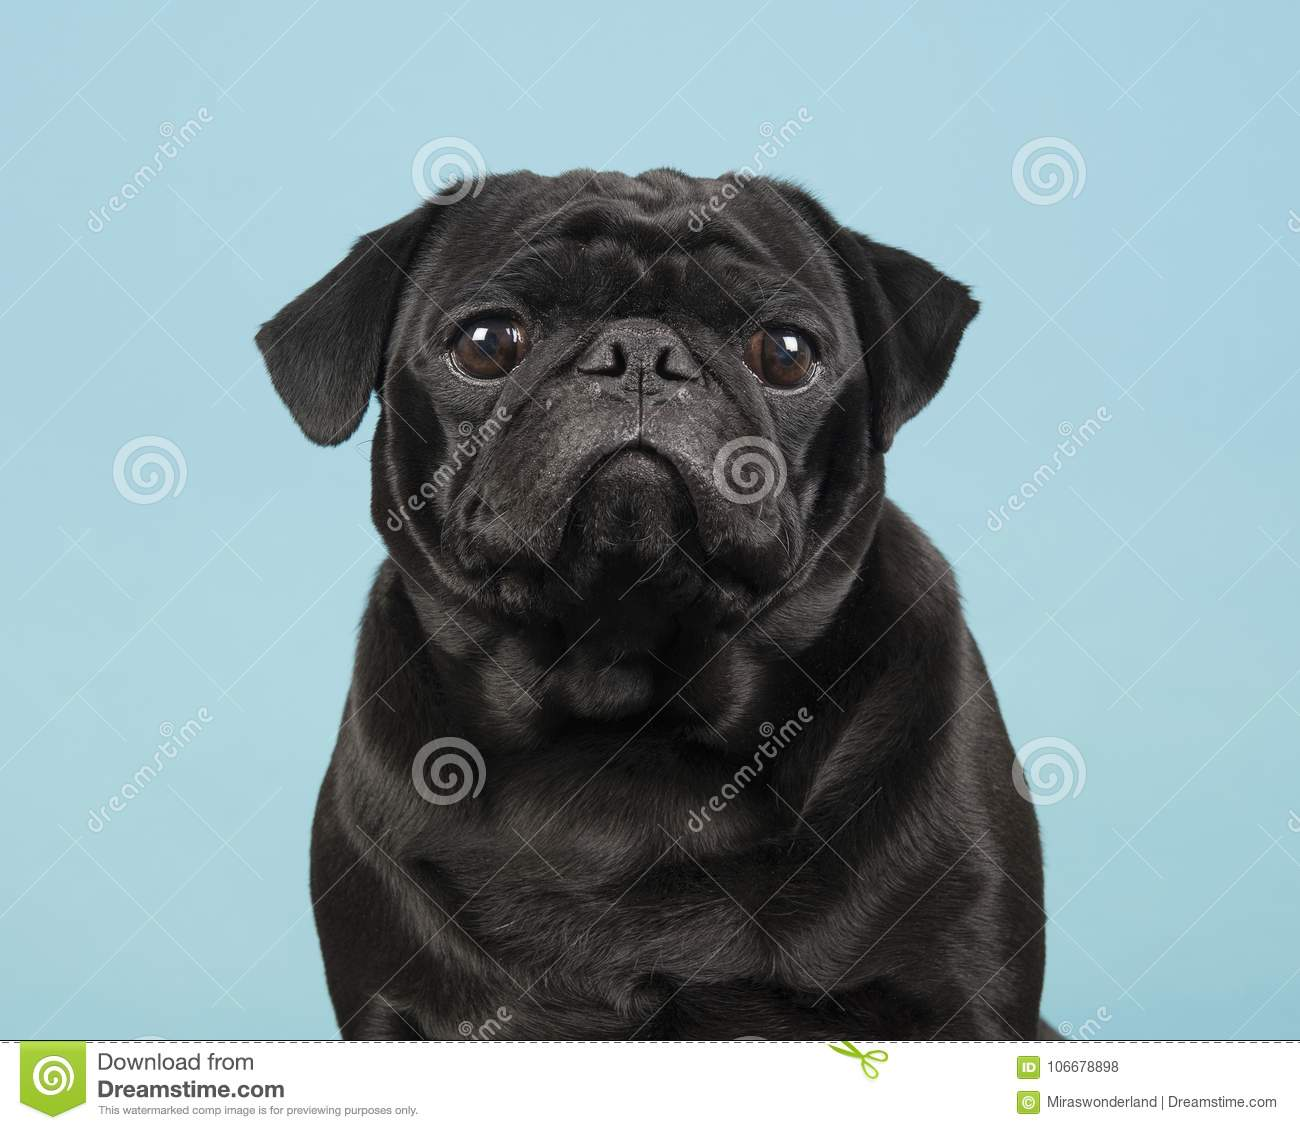 Portrait of a black pug looking at the camera on a blue background